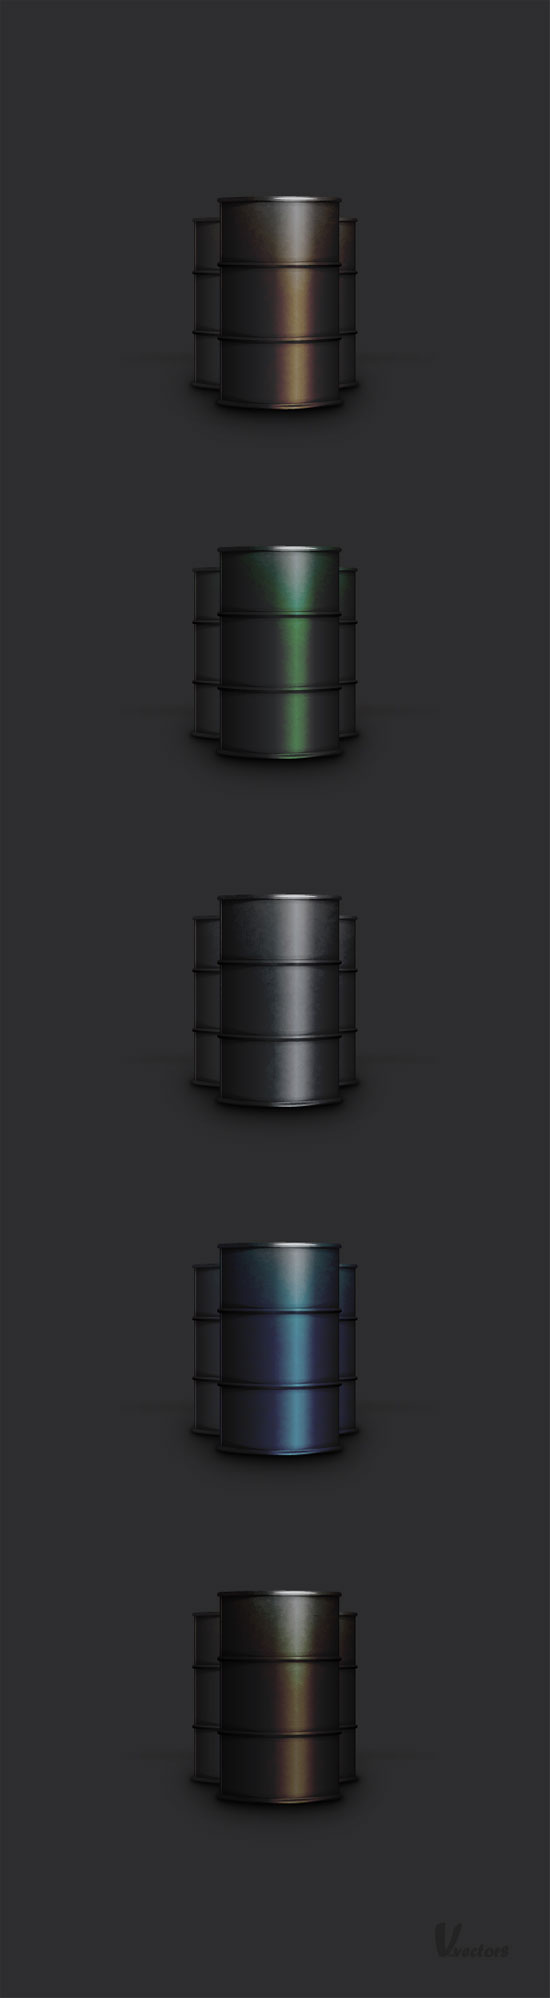 Adobe Illustrator Tutorial: Create a Semi-Realistic Oil Barrel Illustration